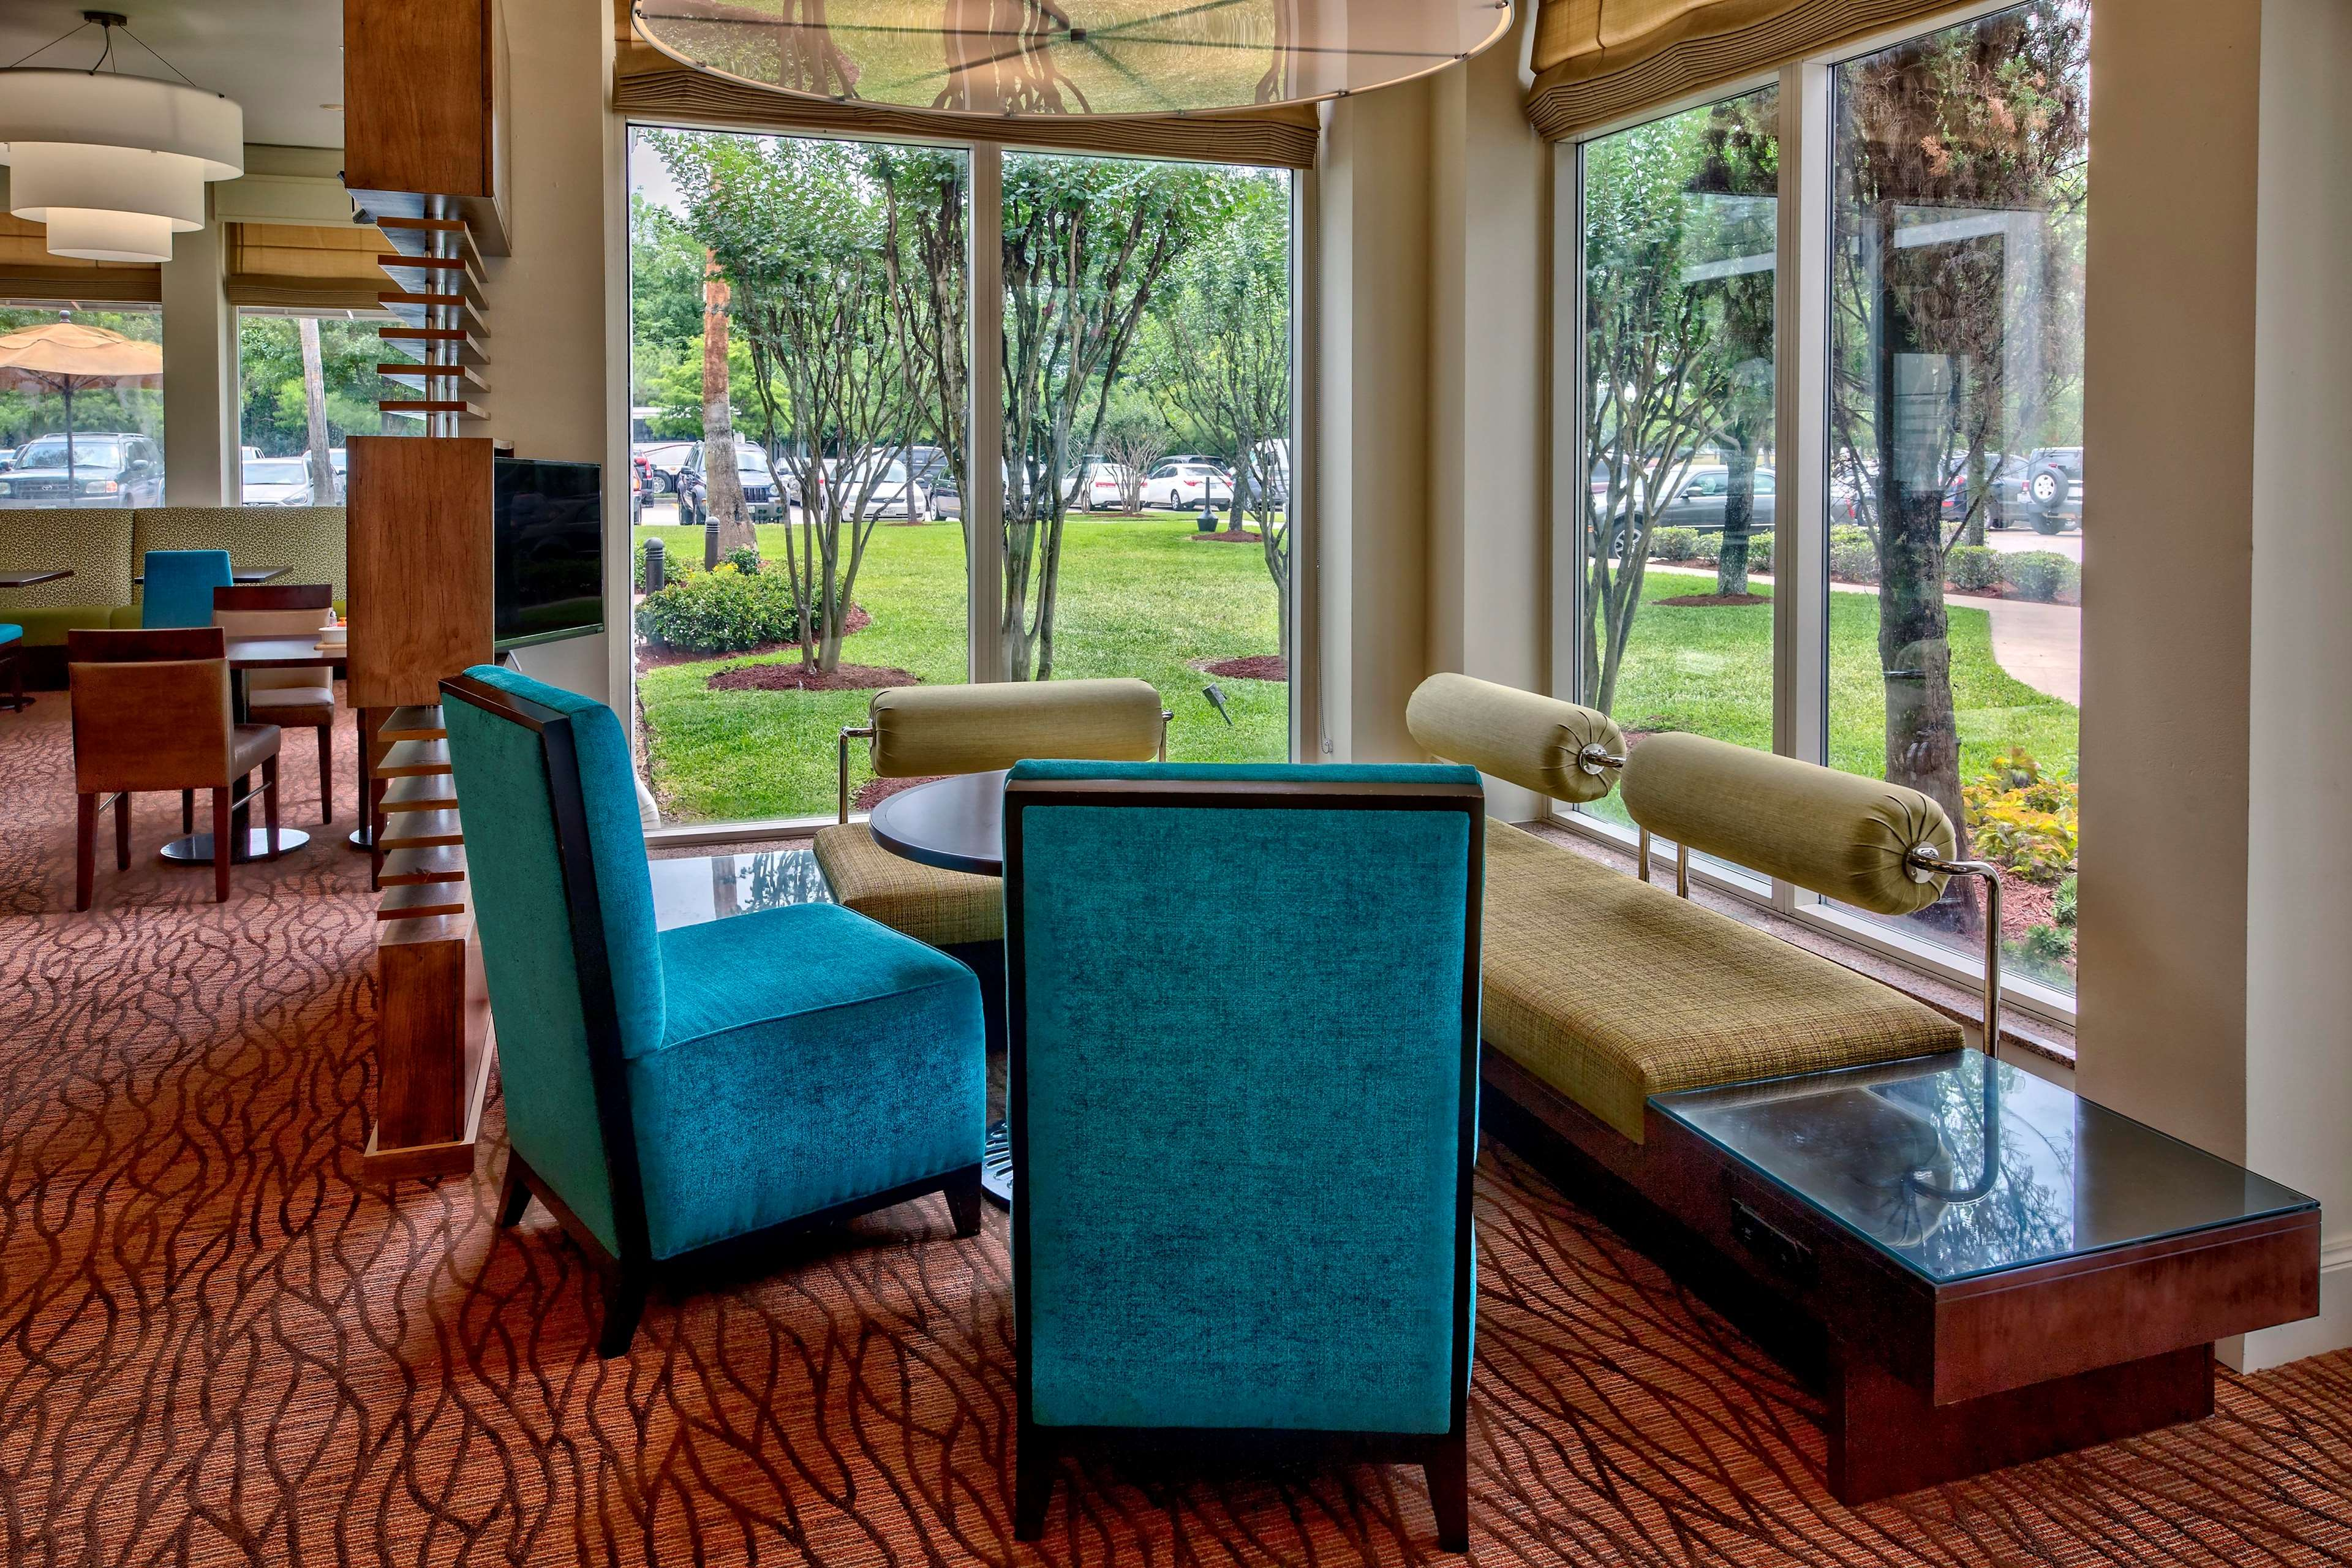 Hilton Garden Inn Houston/Bush Intercontinental Airport image 7